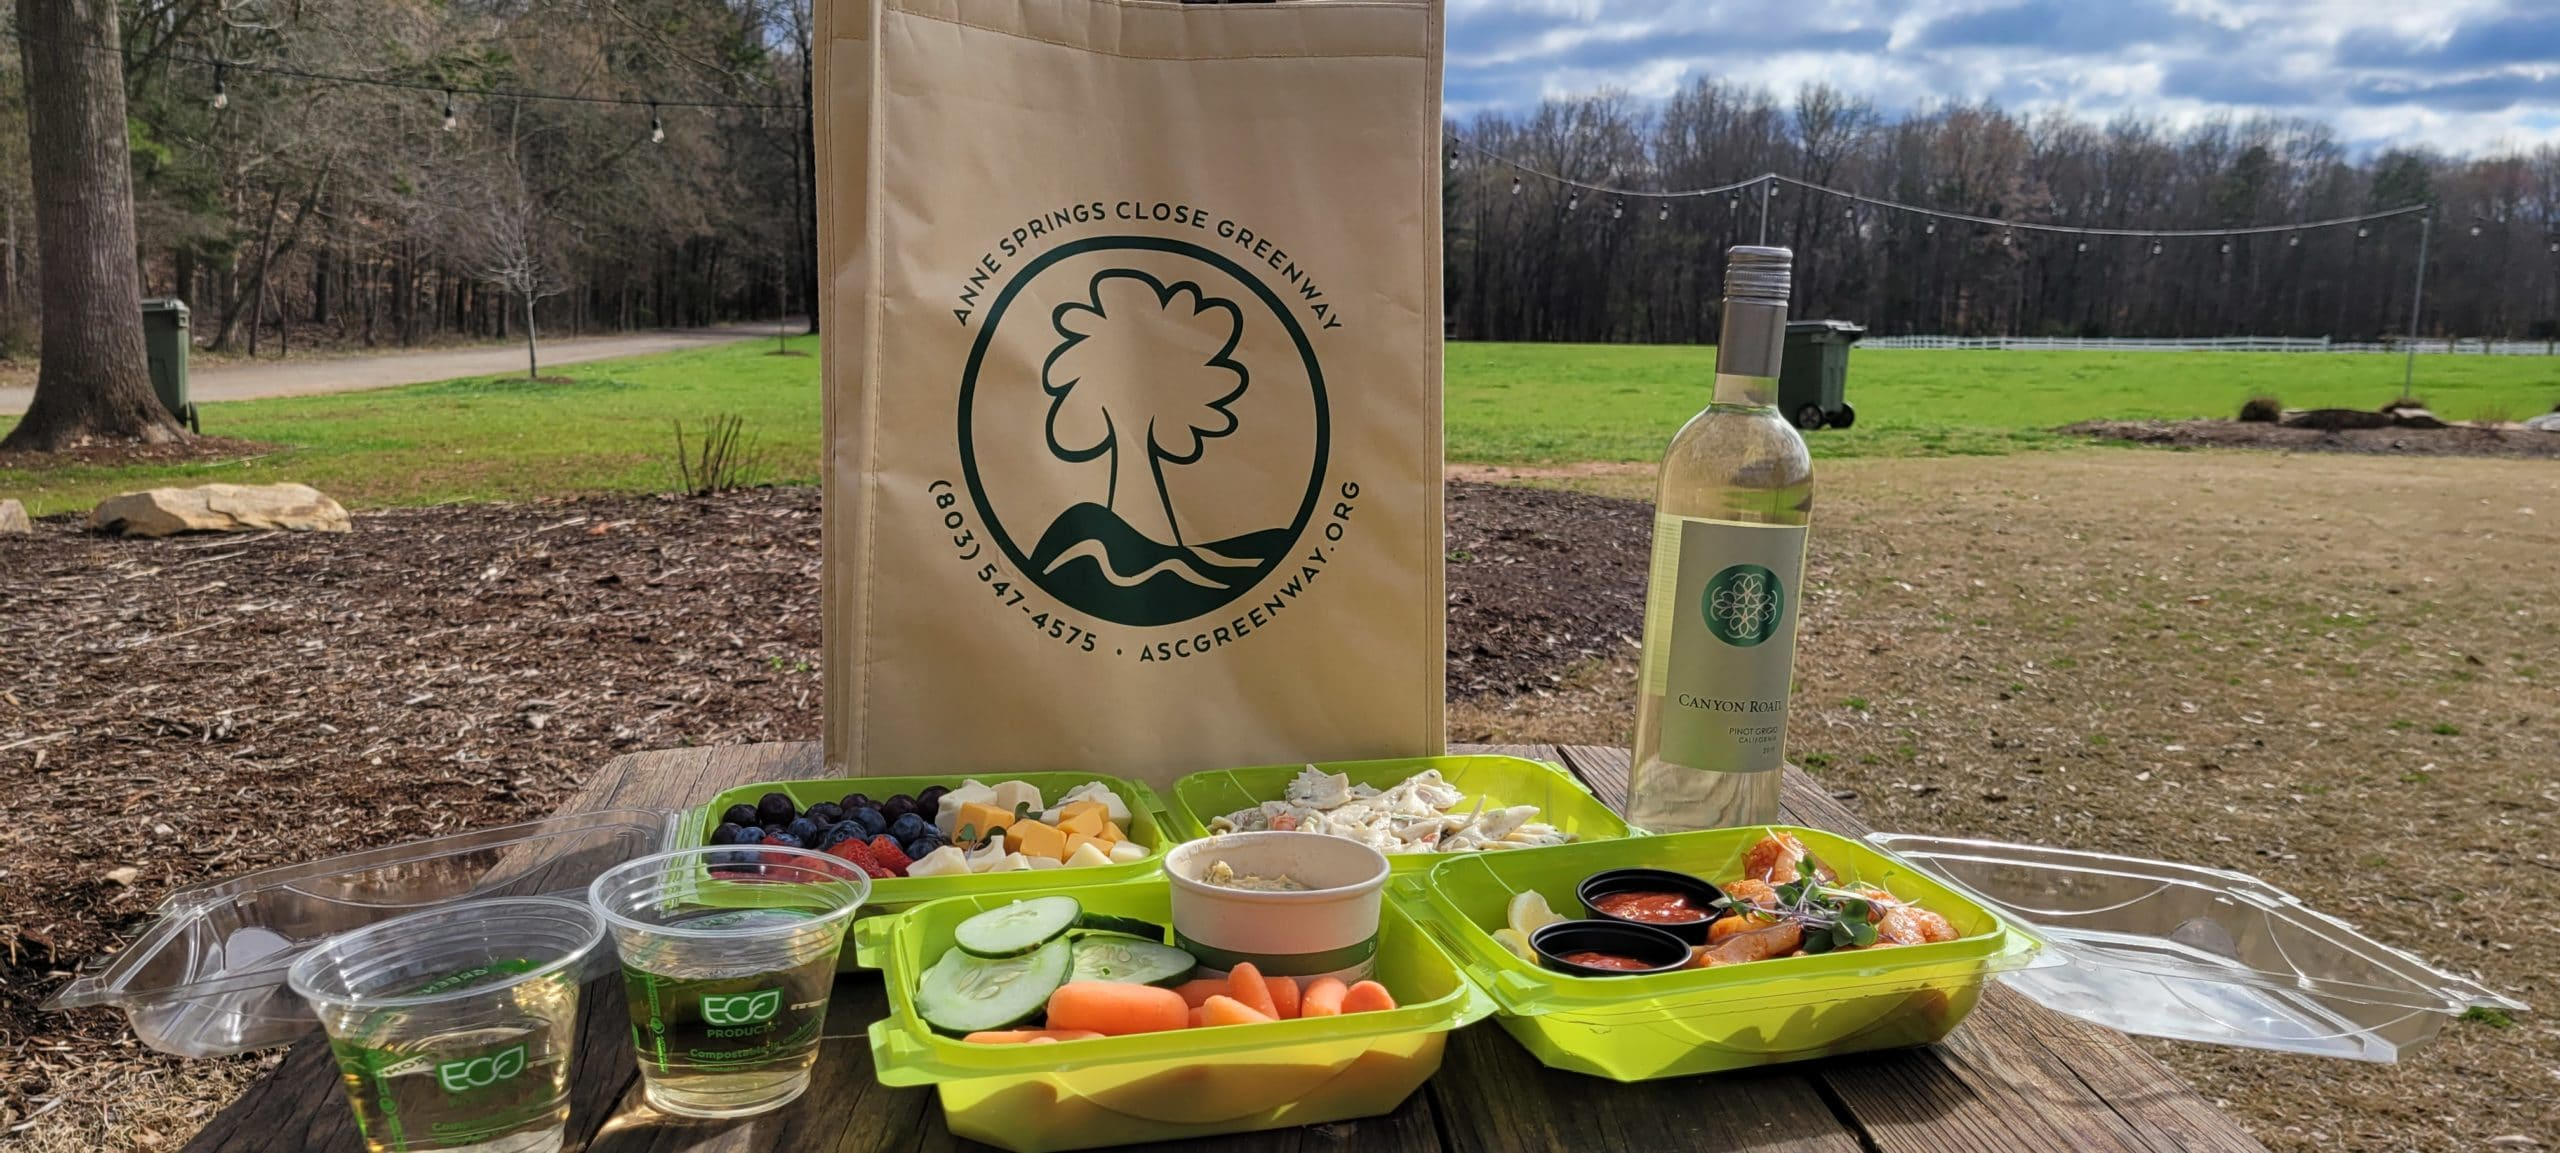 Anne Springs Close Greenway Picnic